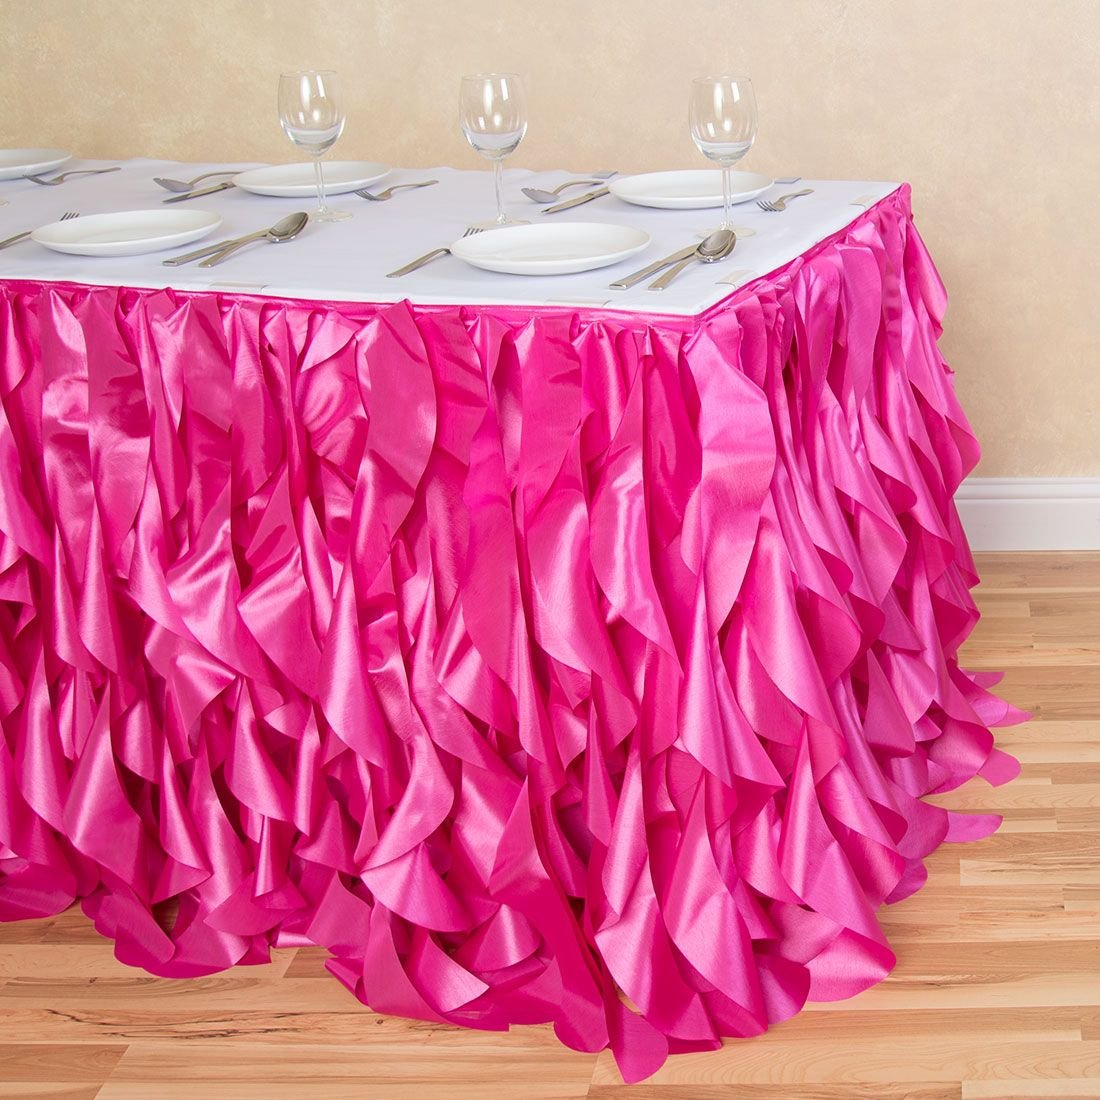 21 ft. Curly Willow Table Skirt Fuchsia by LinenTablecloth